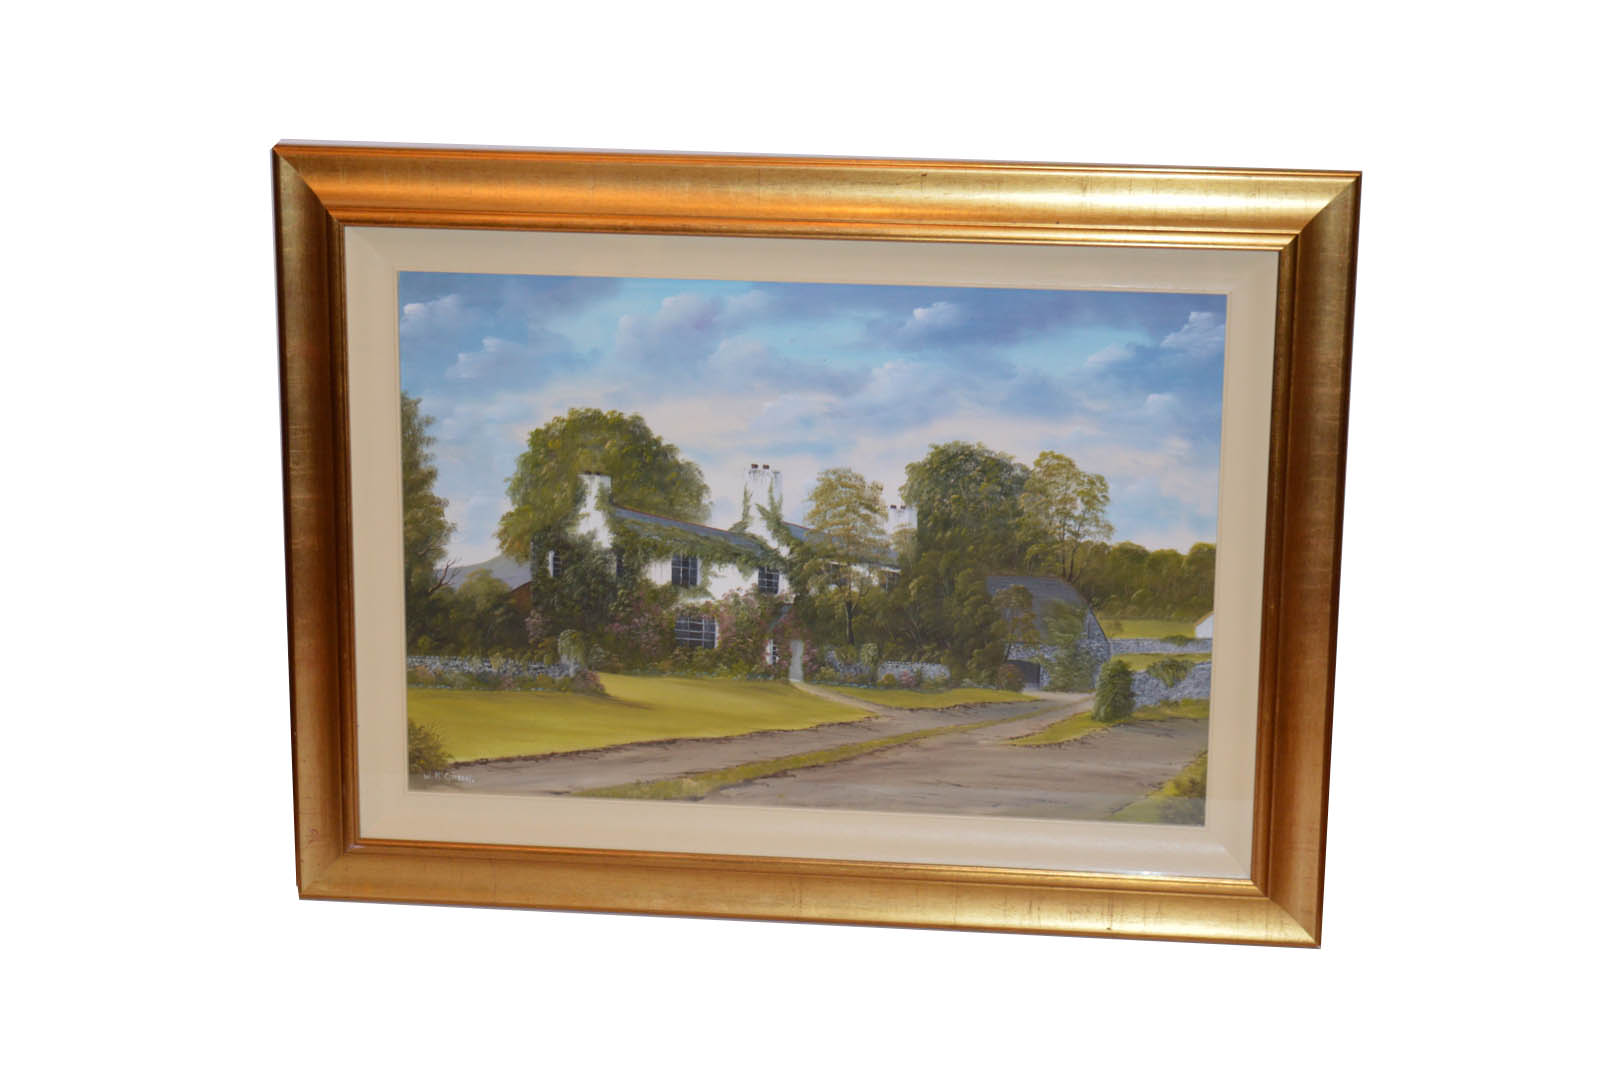 Lot 450 - An Oil Painting 'Country Living' - W McGivern